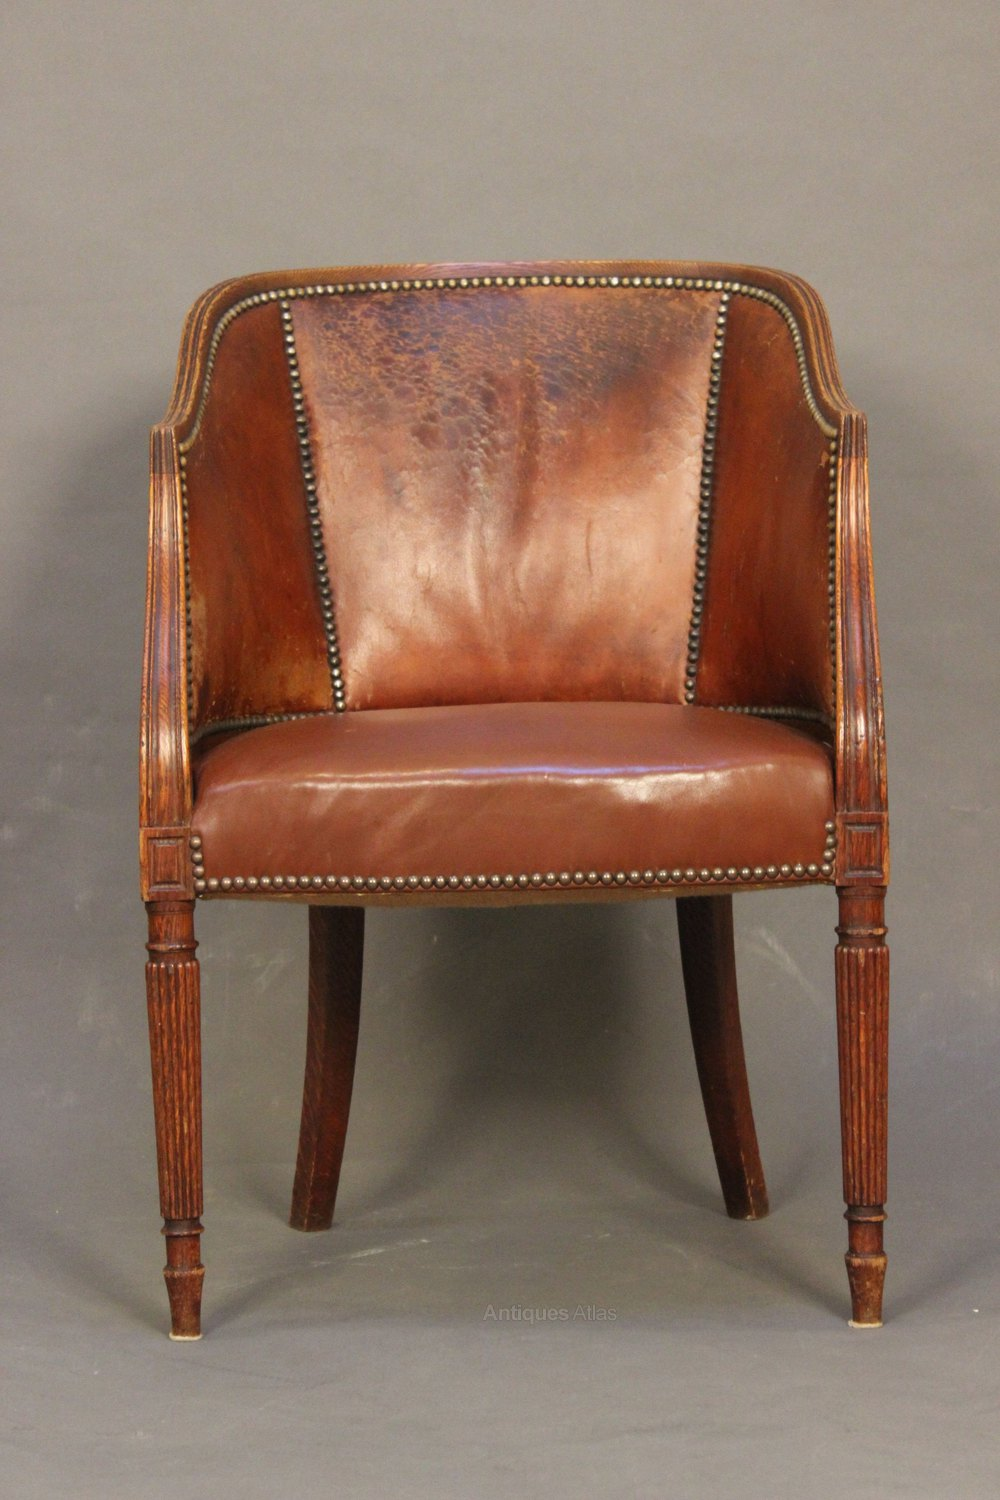 Antique tub chairs -  Leather Antique Tub Chairs